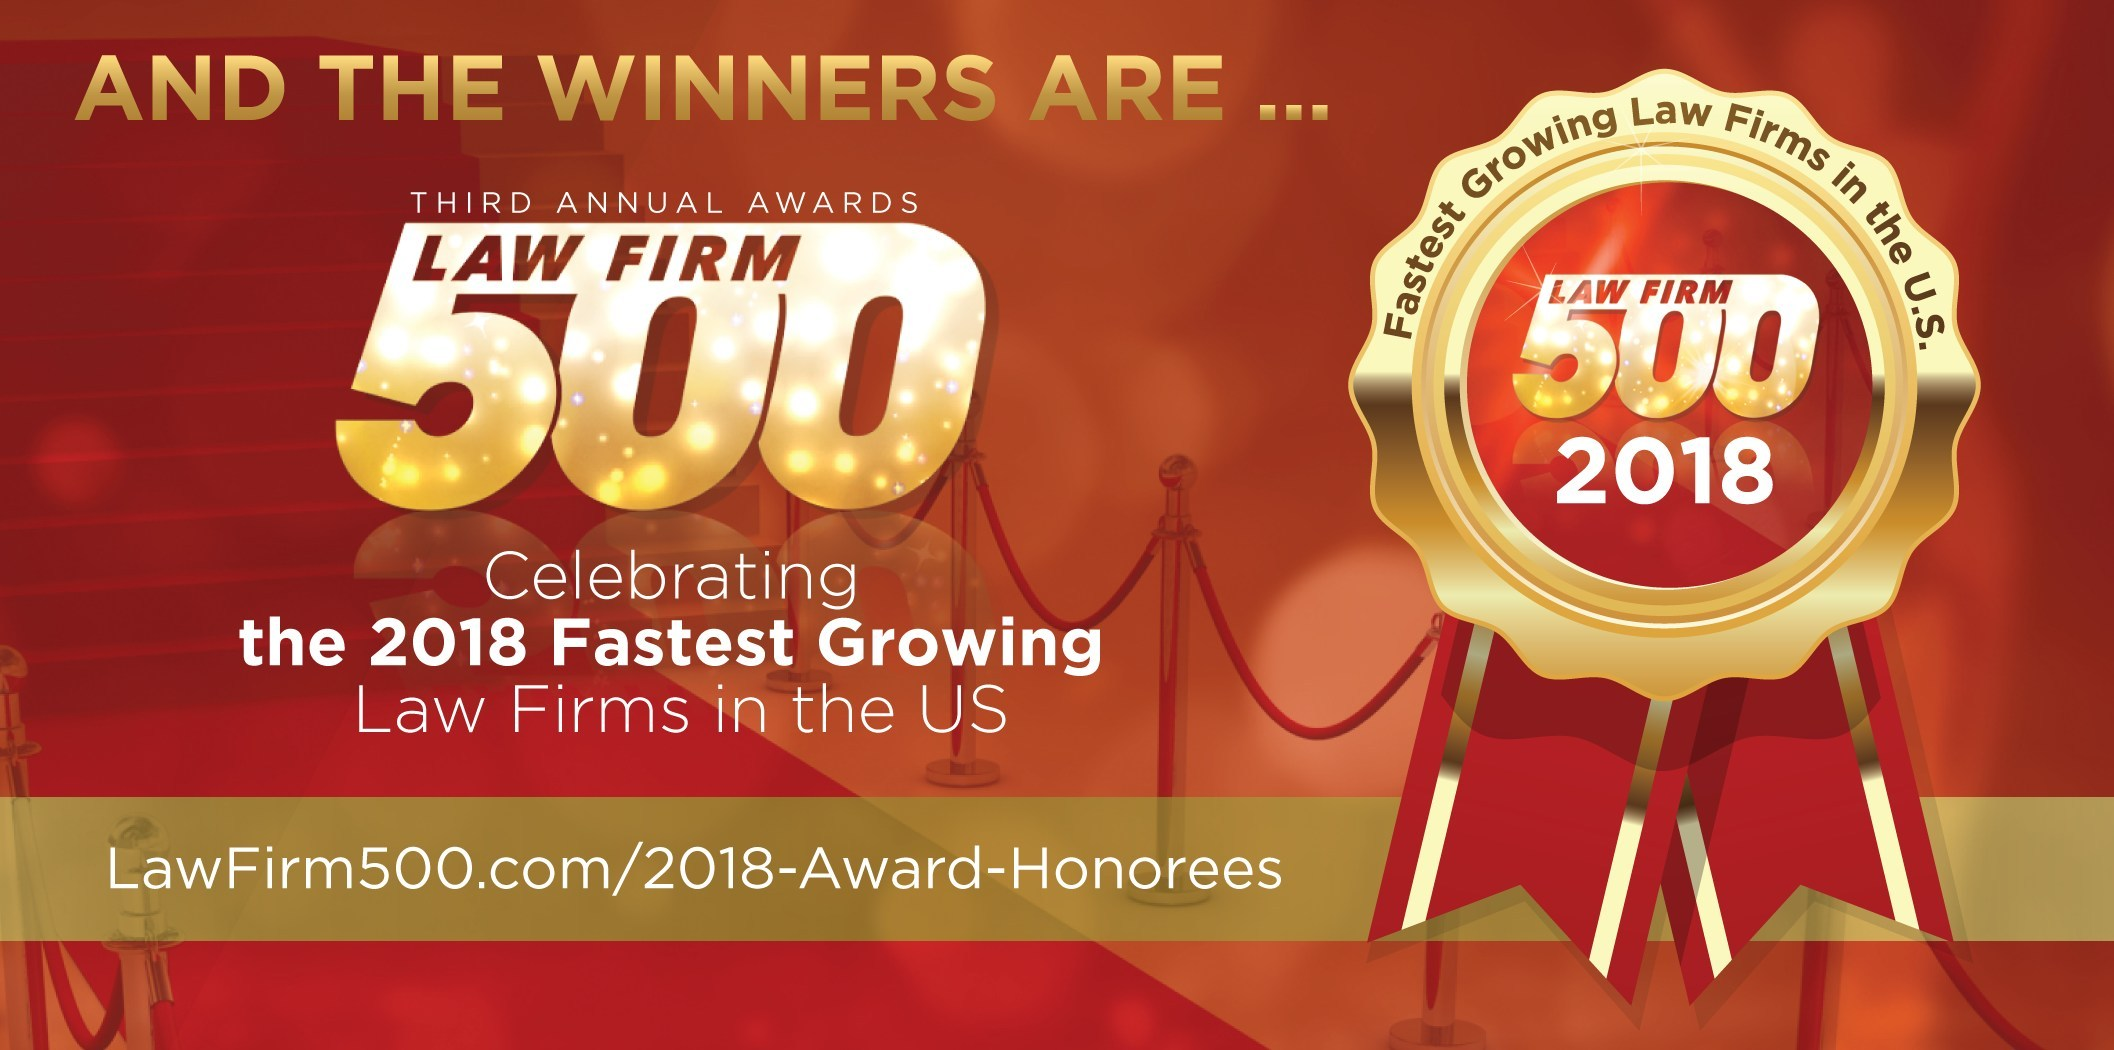 The Winning Honorees of the 2018 Law Firm 500 Awards experienced growth up to a remarkable 1900%. View the list of 2018 Law Firm 500 Honorees at www.lawfirm500.com/2018-award-honorees/